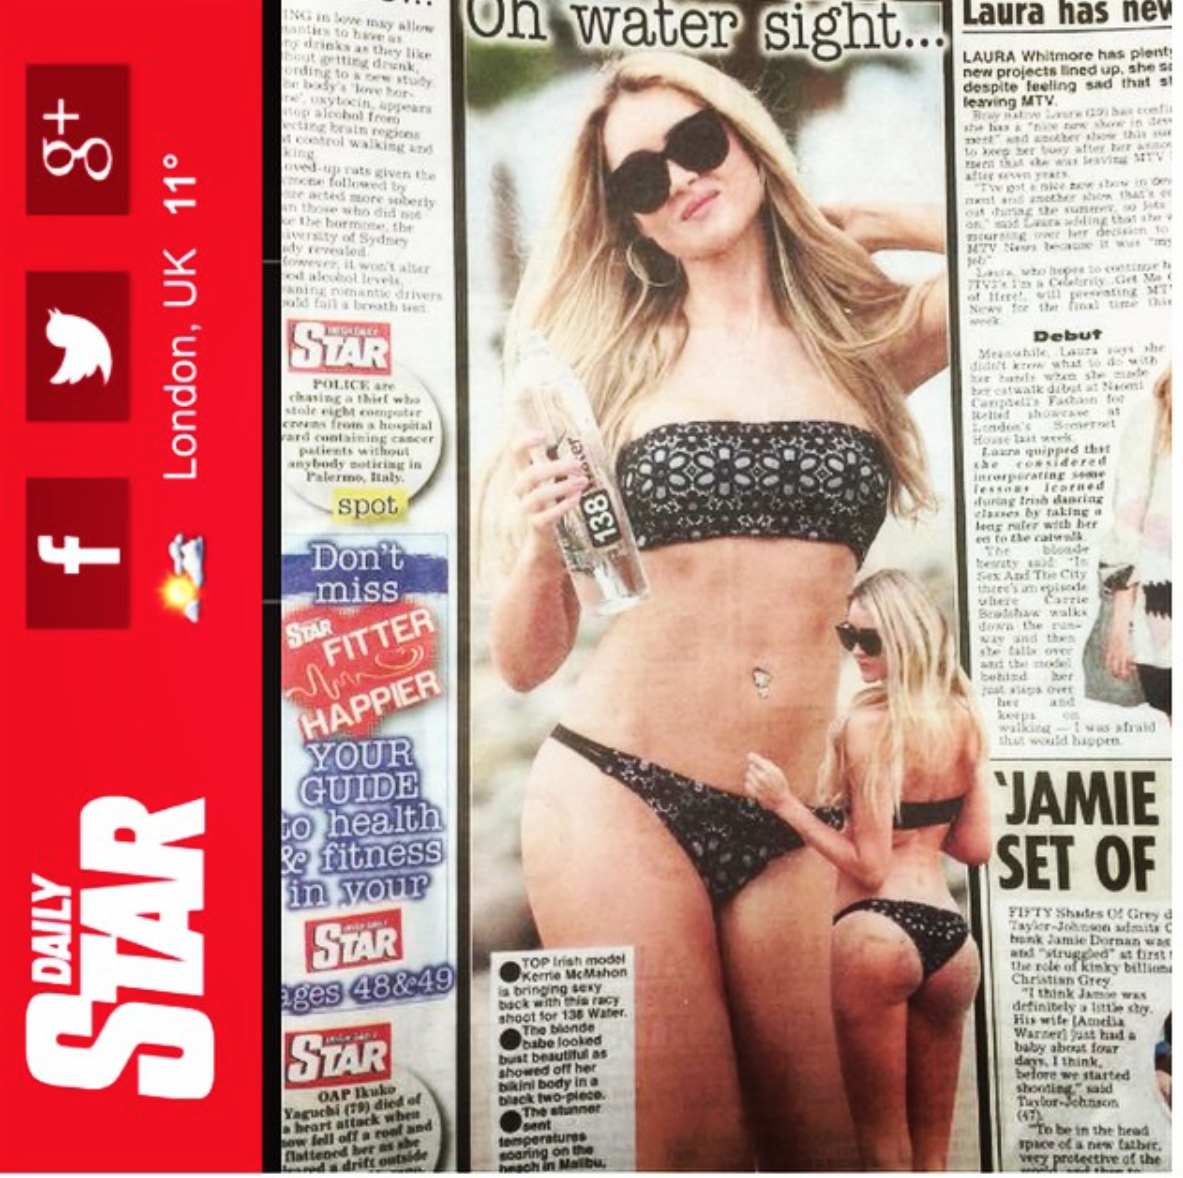 138 Water in Daily Star